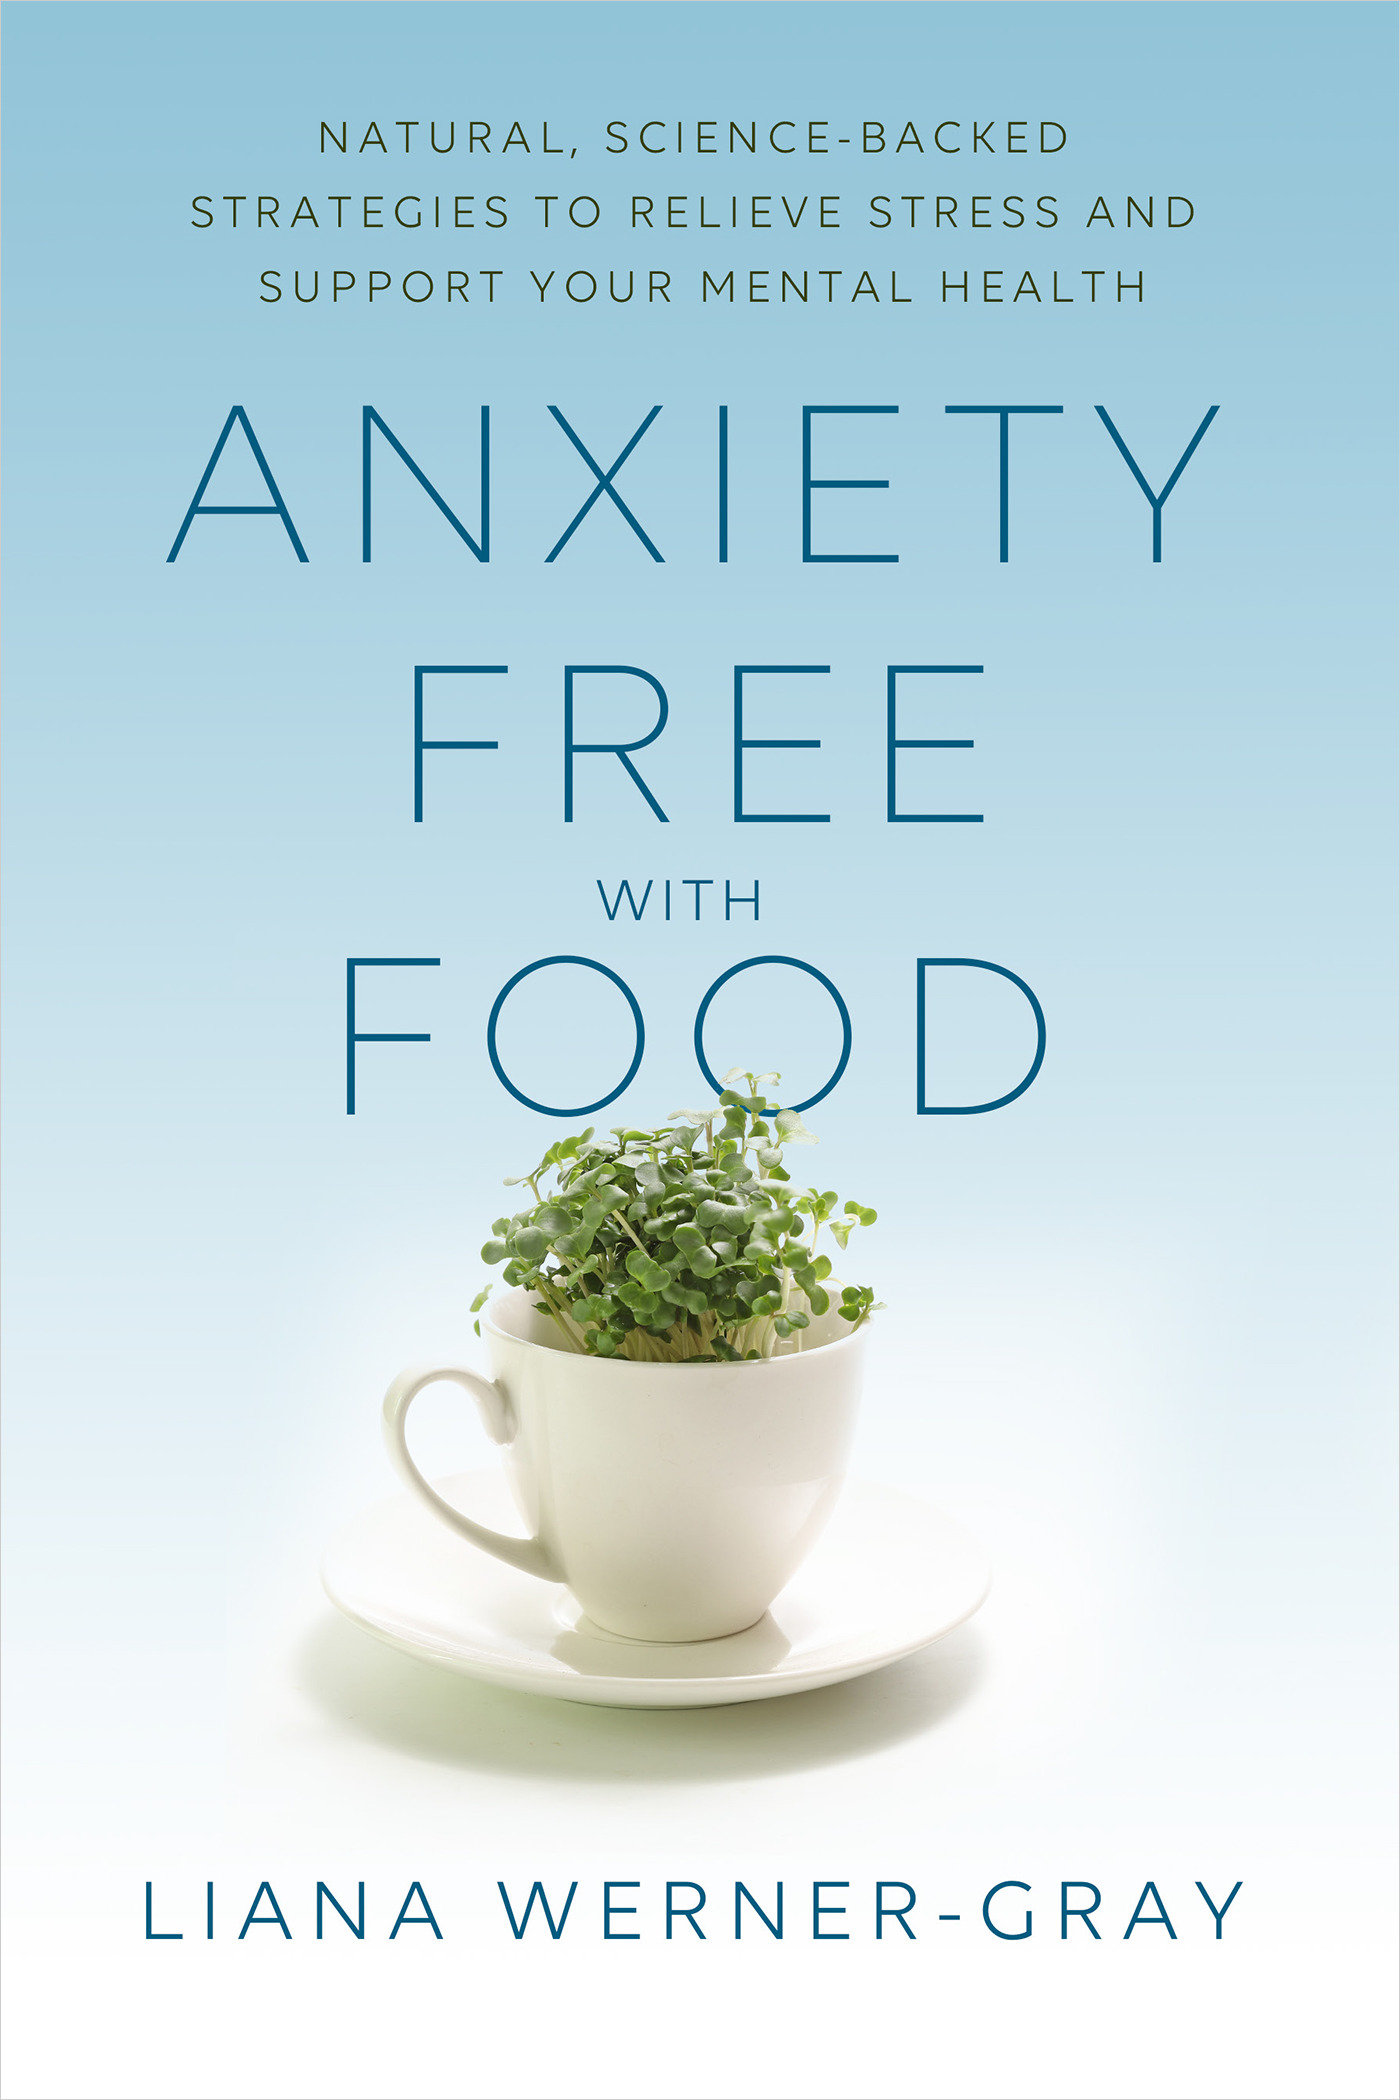 Anxiety-Free with Food Natural, Science-Backed Strategies to Relieve Stress and Support Your Mental Health